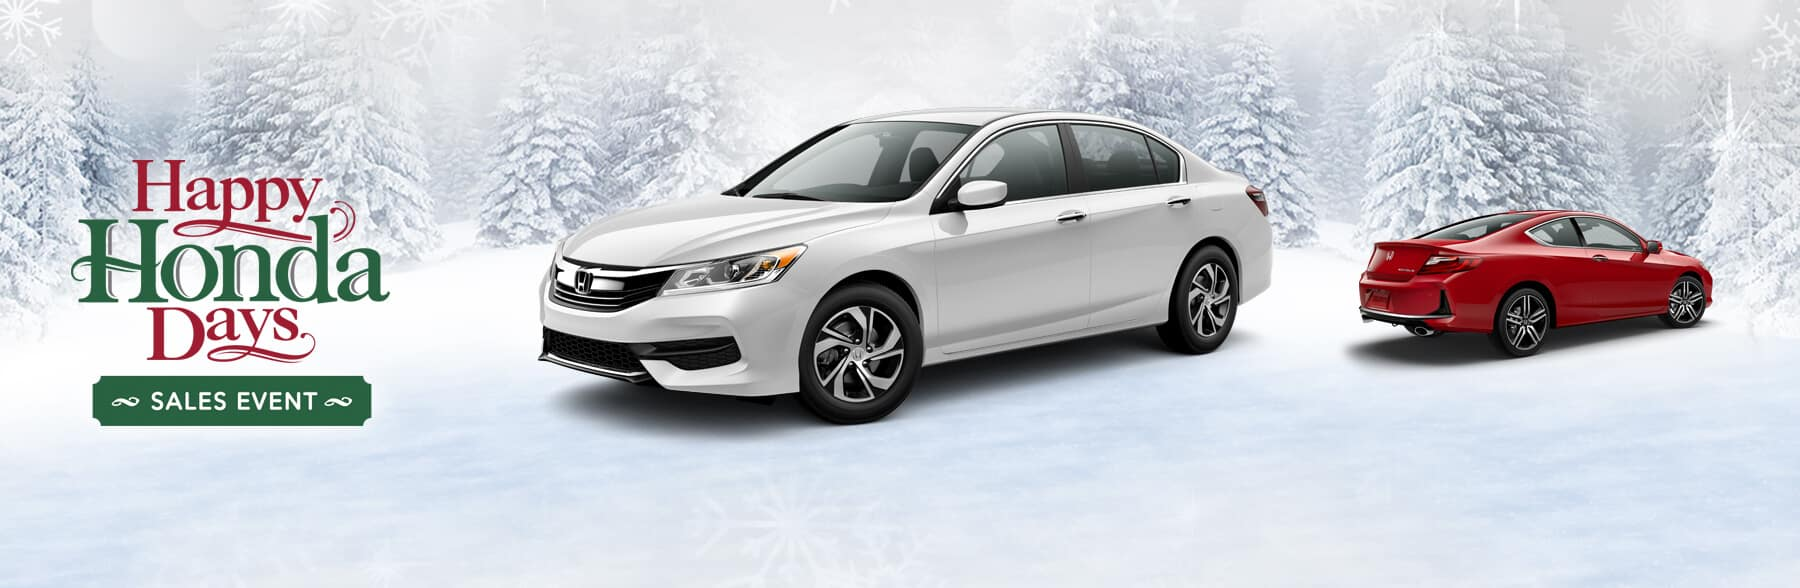 Happy Honda Days Sales Event Accord Banner